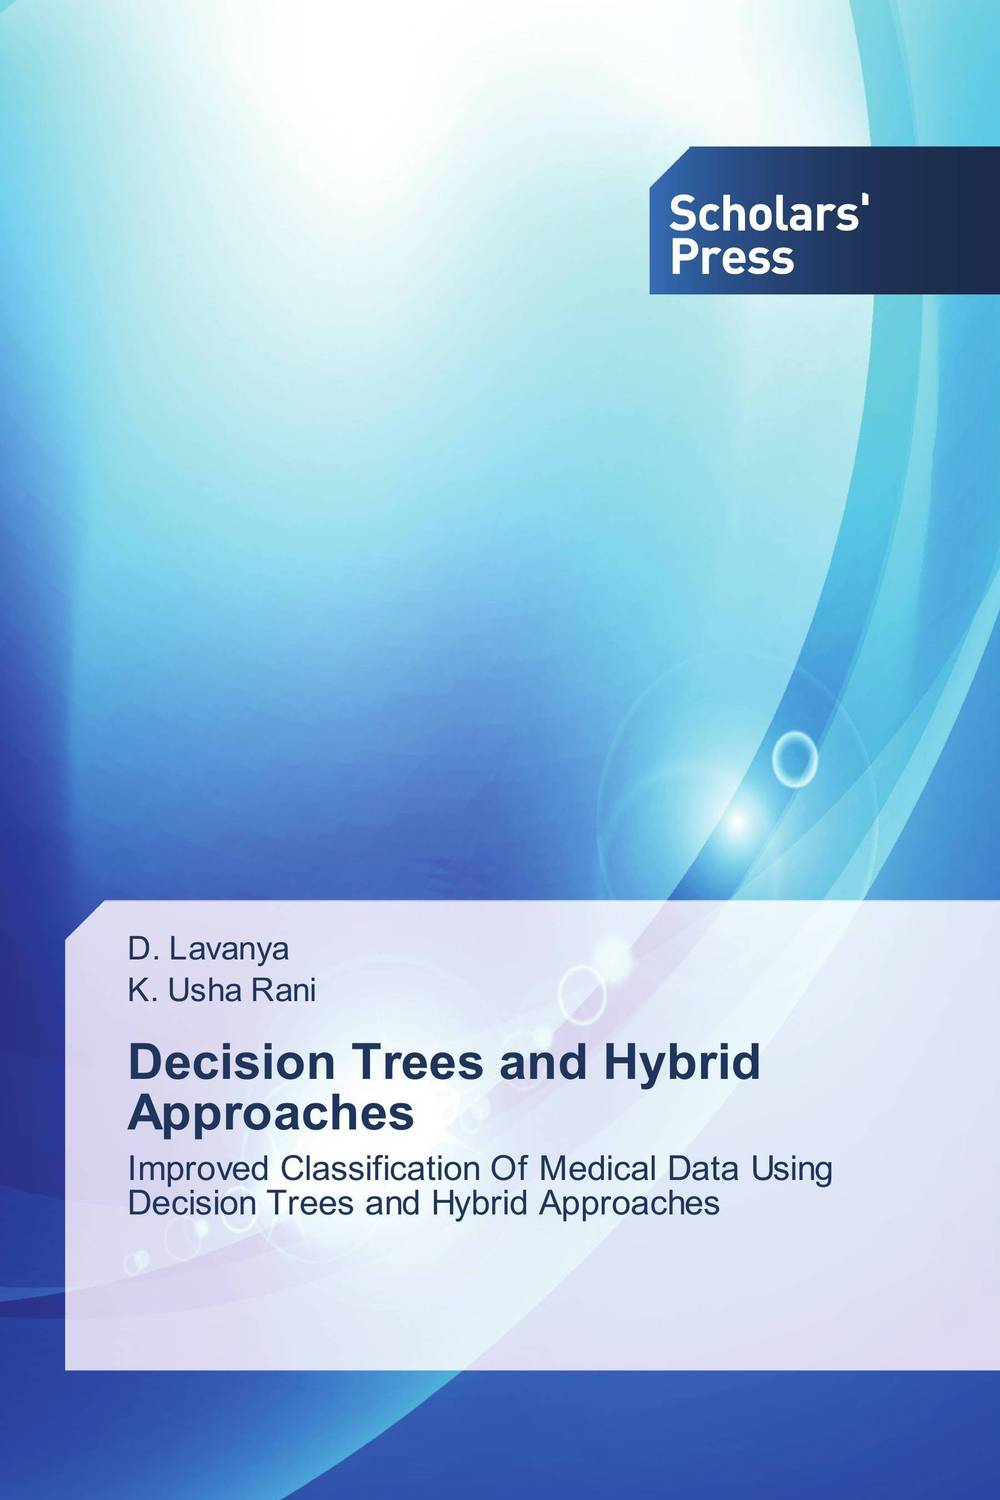 Decision Trees and Hybrid Approaches breast cancer self exam device with the physical method and high accuracy